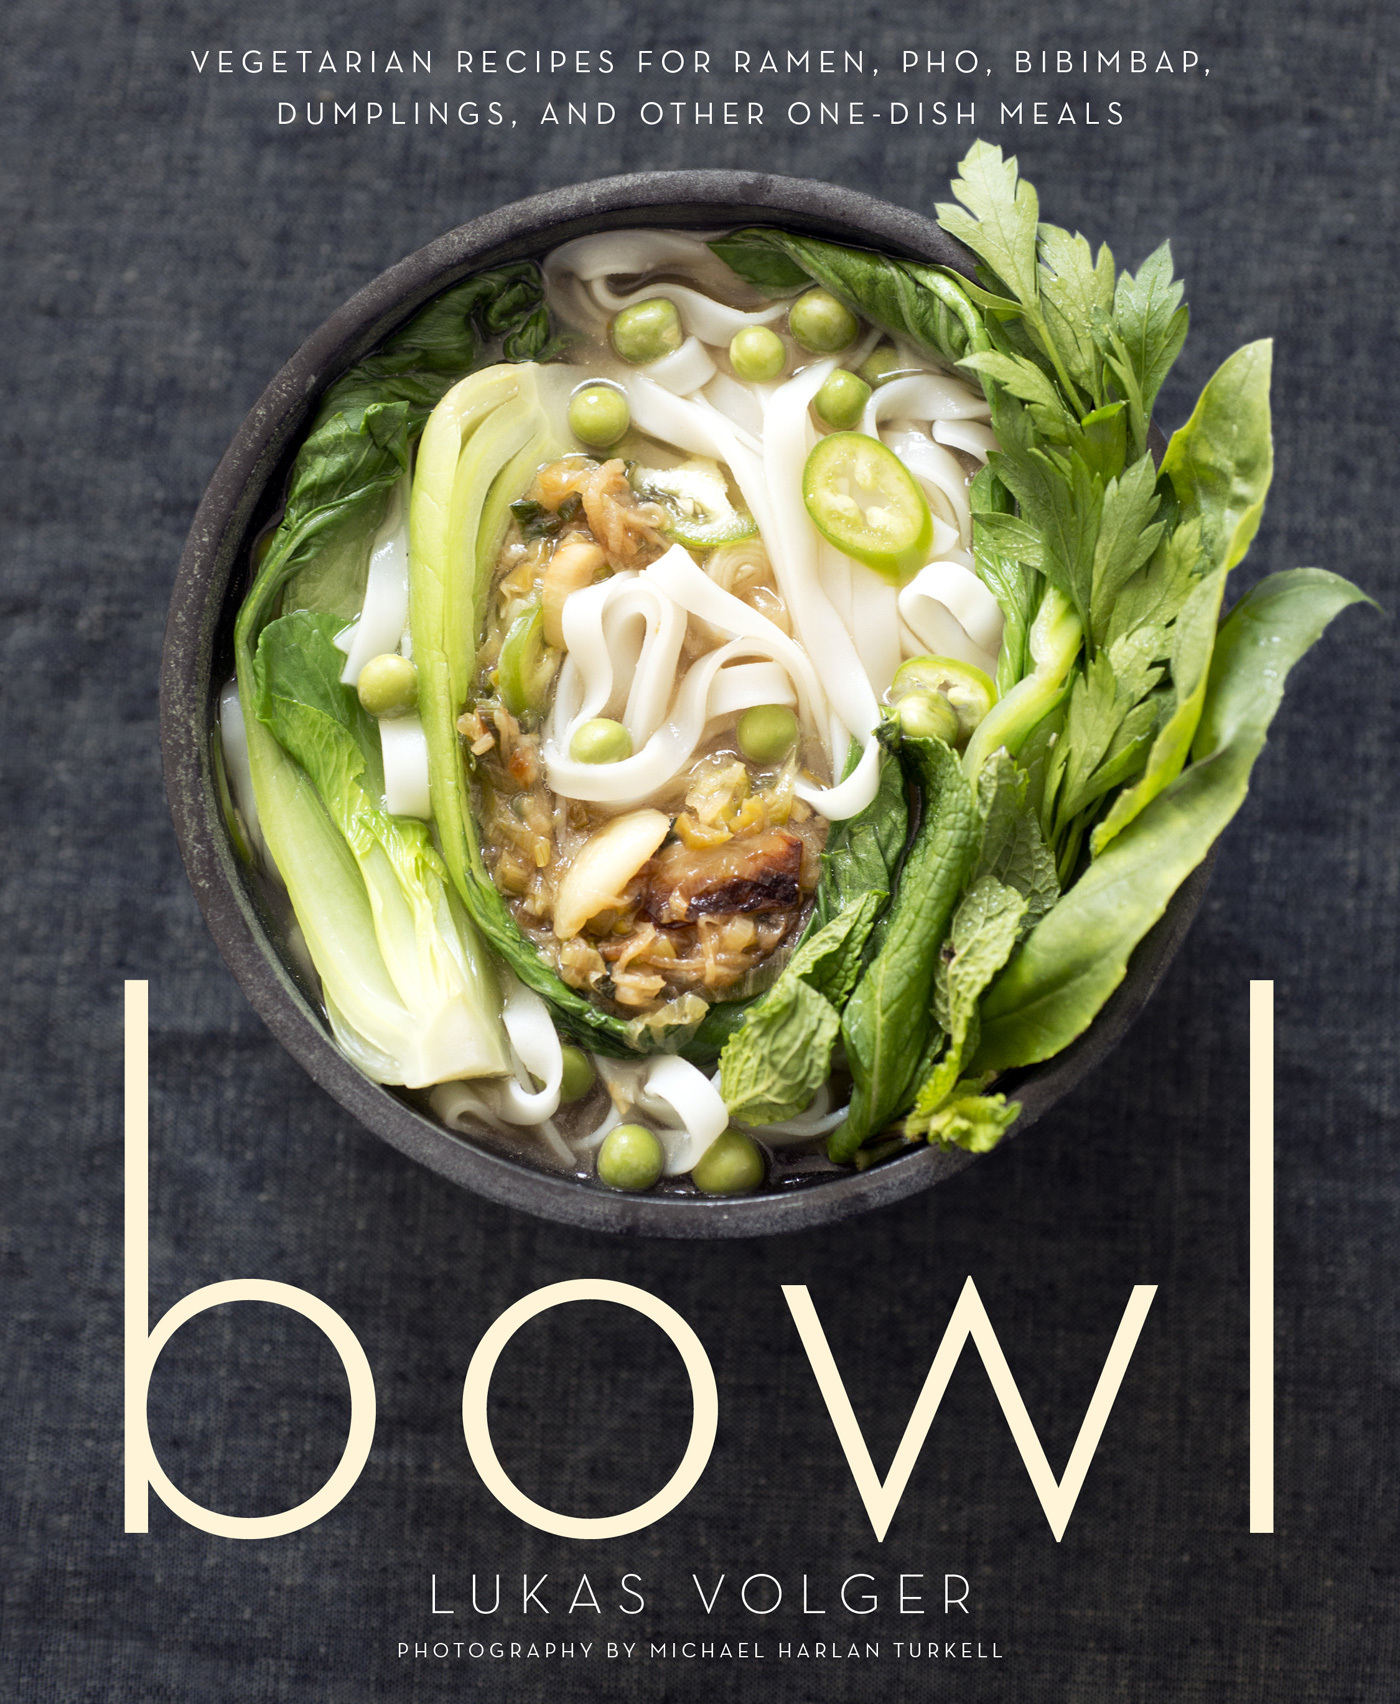 Bowl - Vegetarian Recipes for Ramen, Pho, Bibimbap, Dumplings, and Other One-Dish Meals